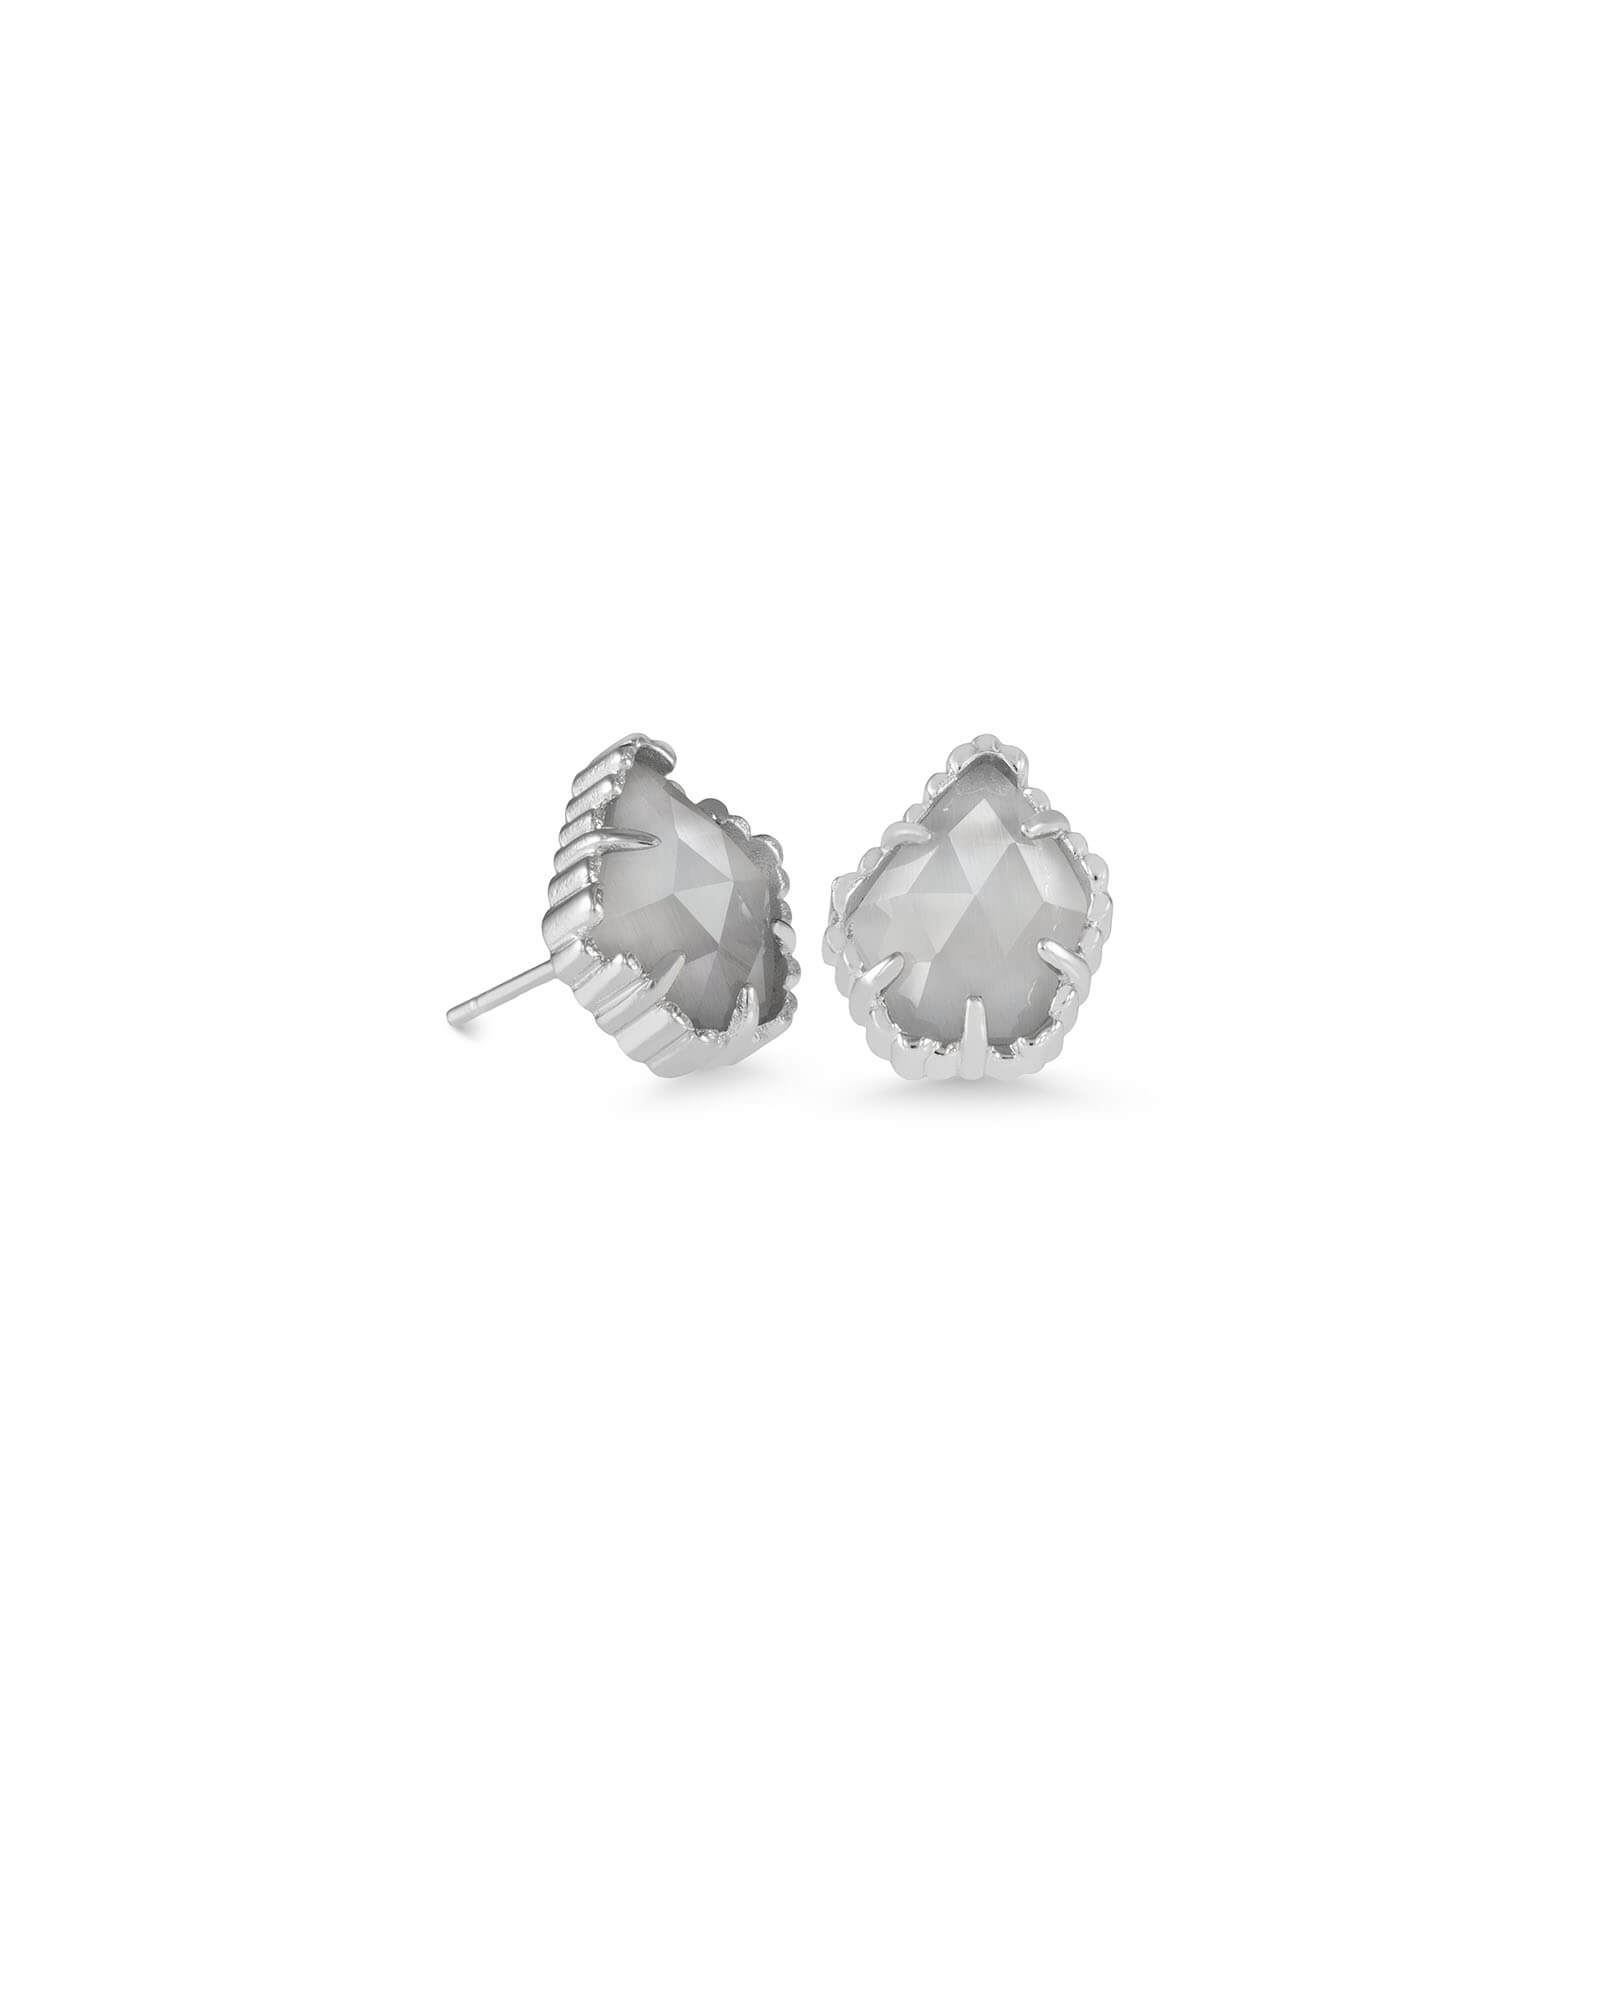 Tessa Silver Stud Earrings in Slate Cats Eye